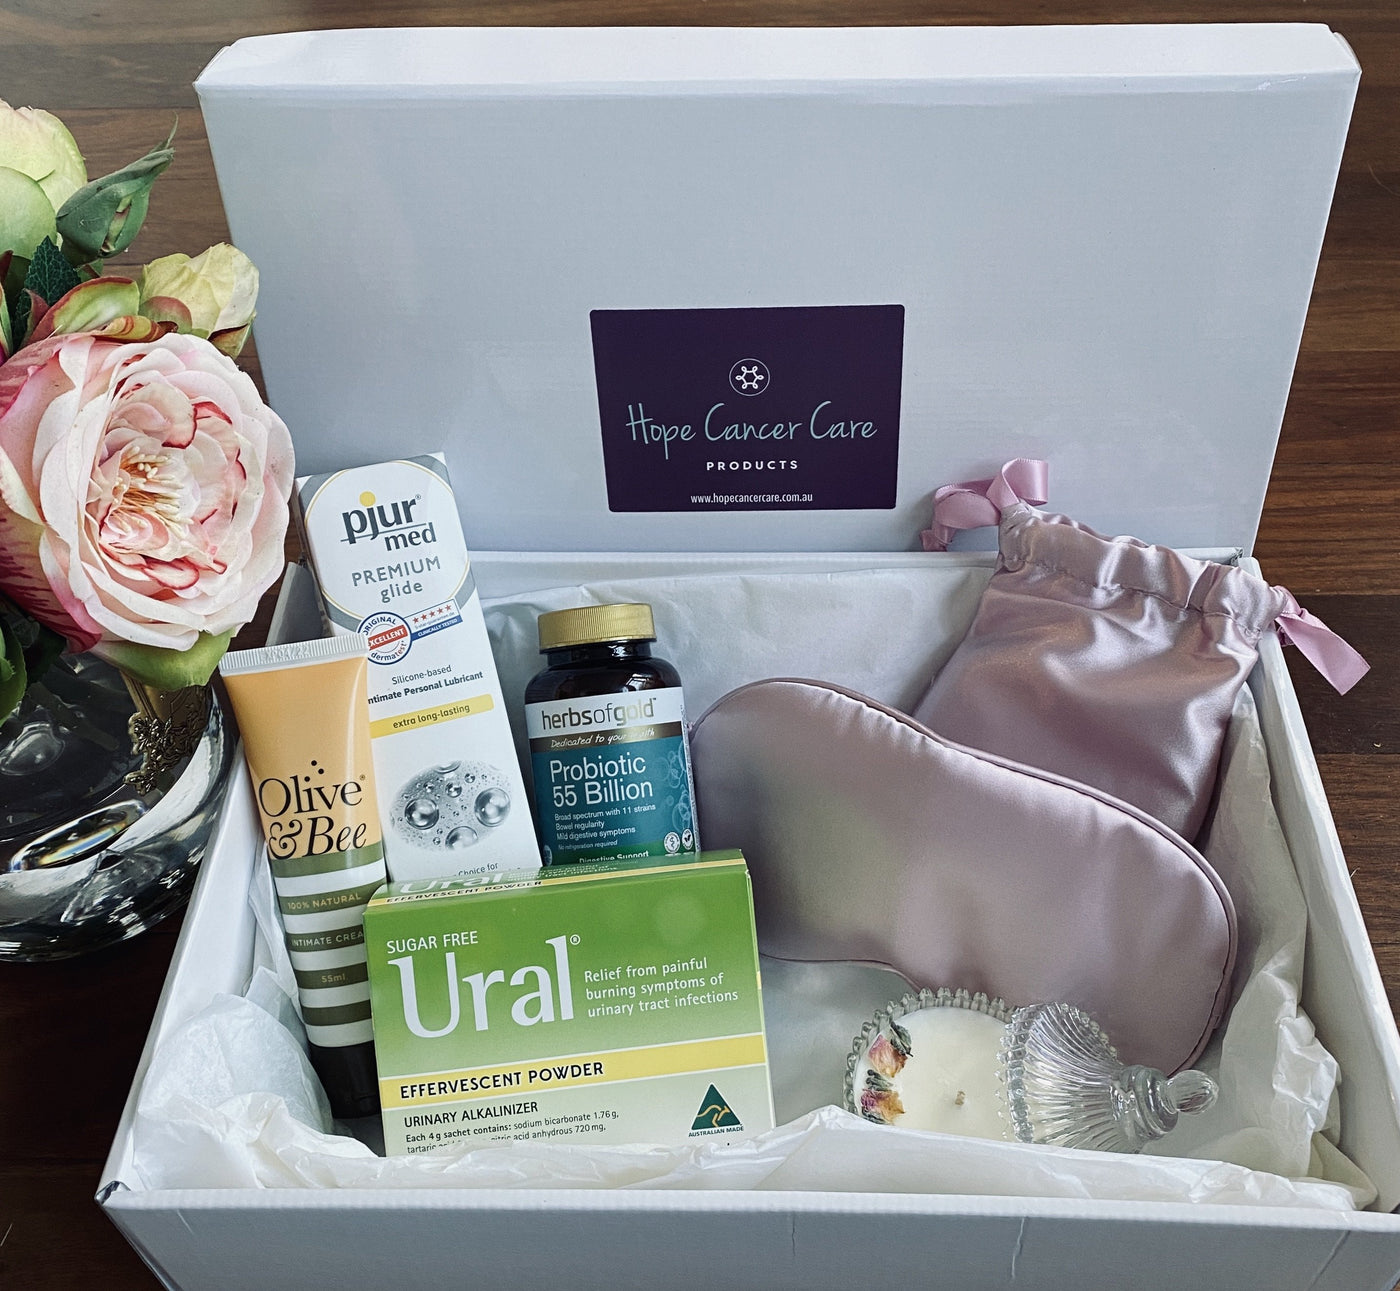 The HOPE Pelvic Radiation Gift Pack for Her